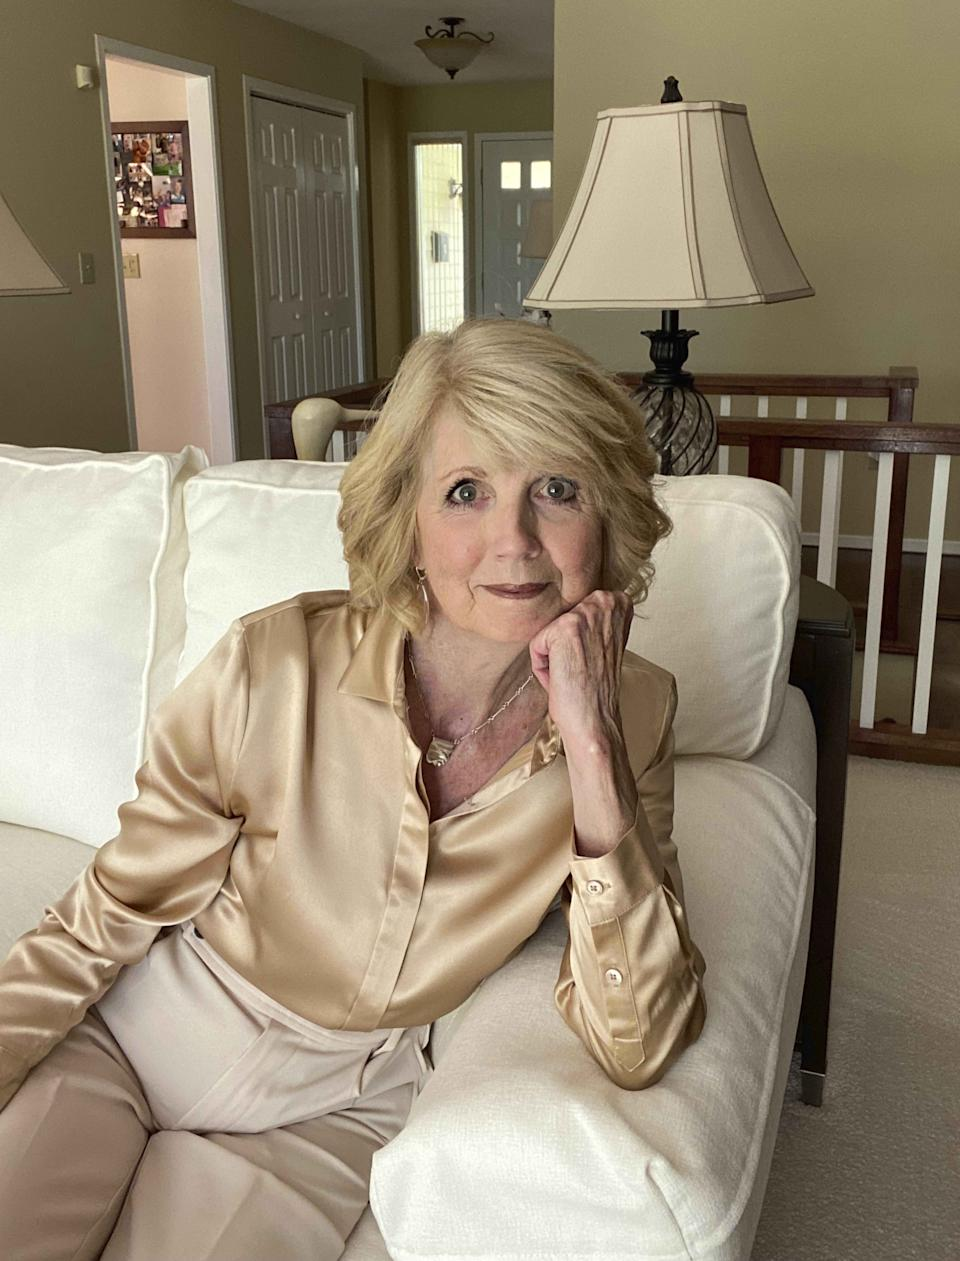 """This photo shows Candace Cima, 74, in Ithaca, New York, on Aug. 12, 2021. Cima, who goes by @styleinyour70s.withleslieb, is among a growing number of """"grandfluencers,"""" folks 70 and up who are making names for themselves on social media. (Gregory B. Rudgers via AP)."""